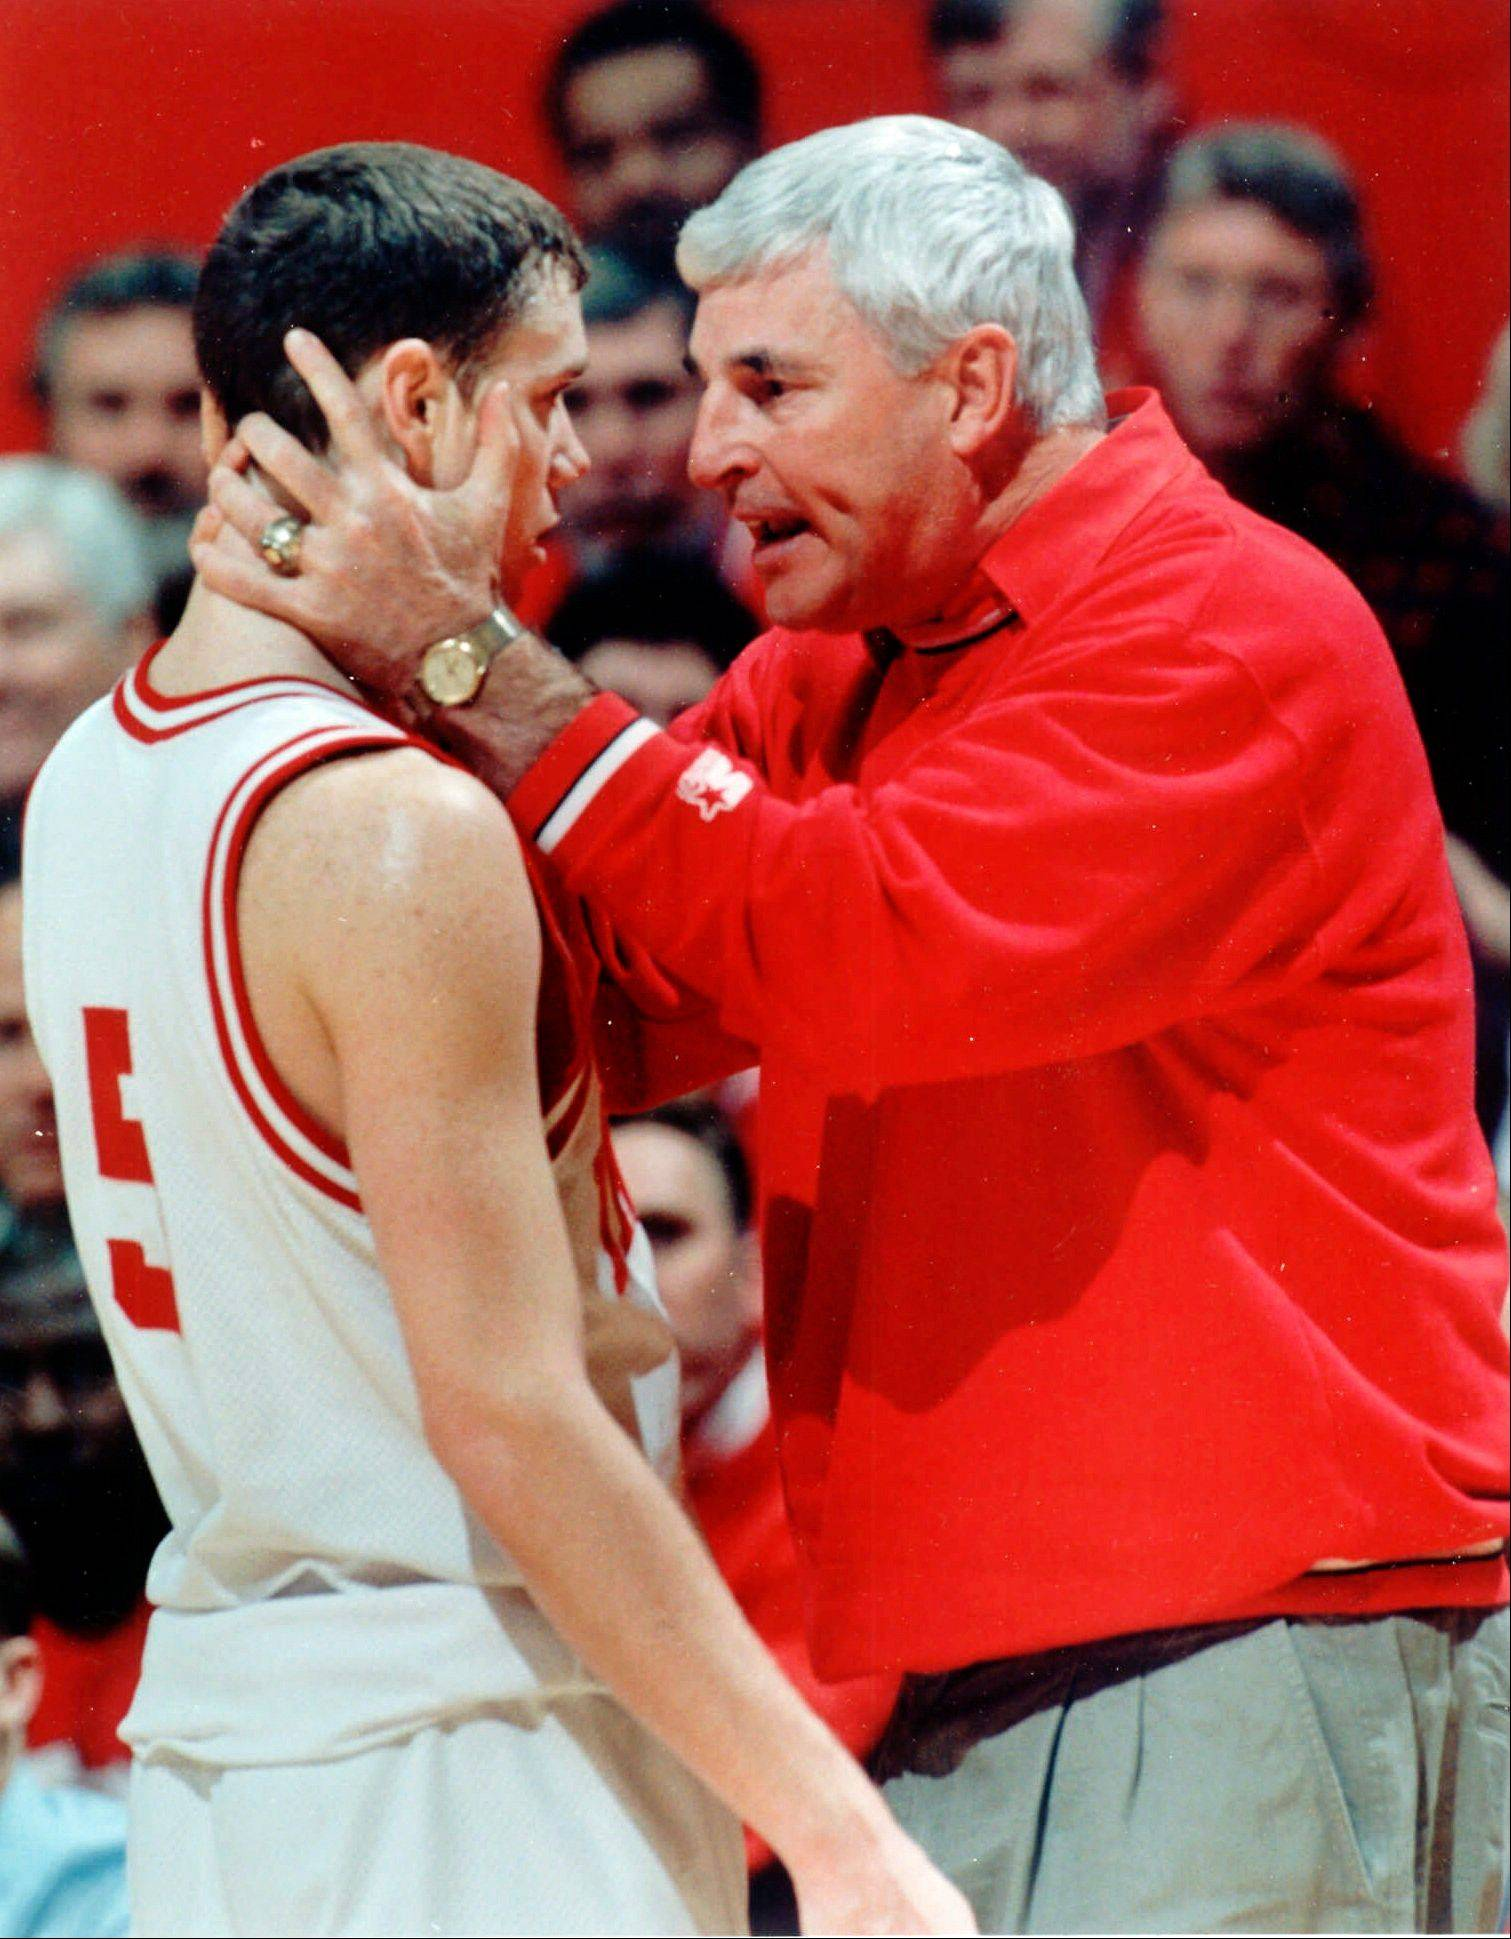 Indiana head coach Bob Knight talks with Neil Reed during a 1996 game against Ohio State at Assembly Hall in Bloomington, Ind. In March 2000, Reed accused Knight of choking him during a practice in 1997.